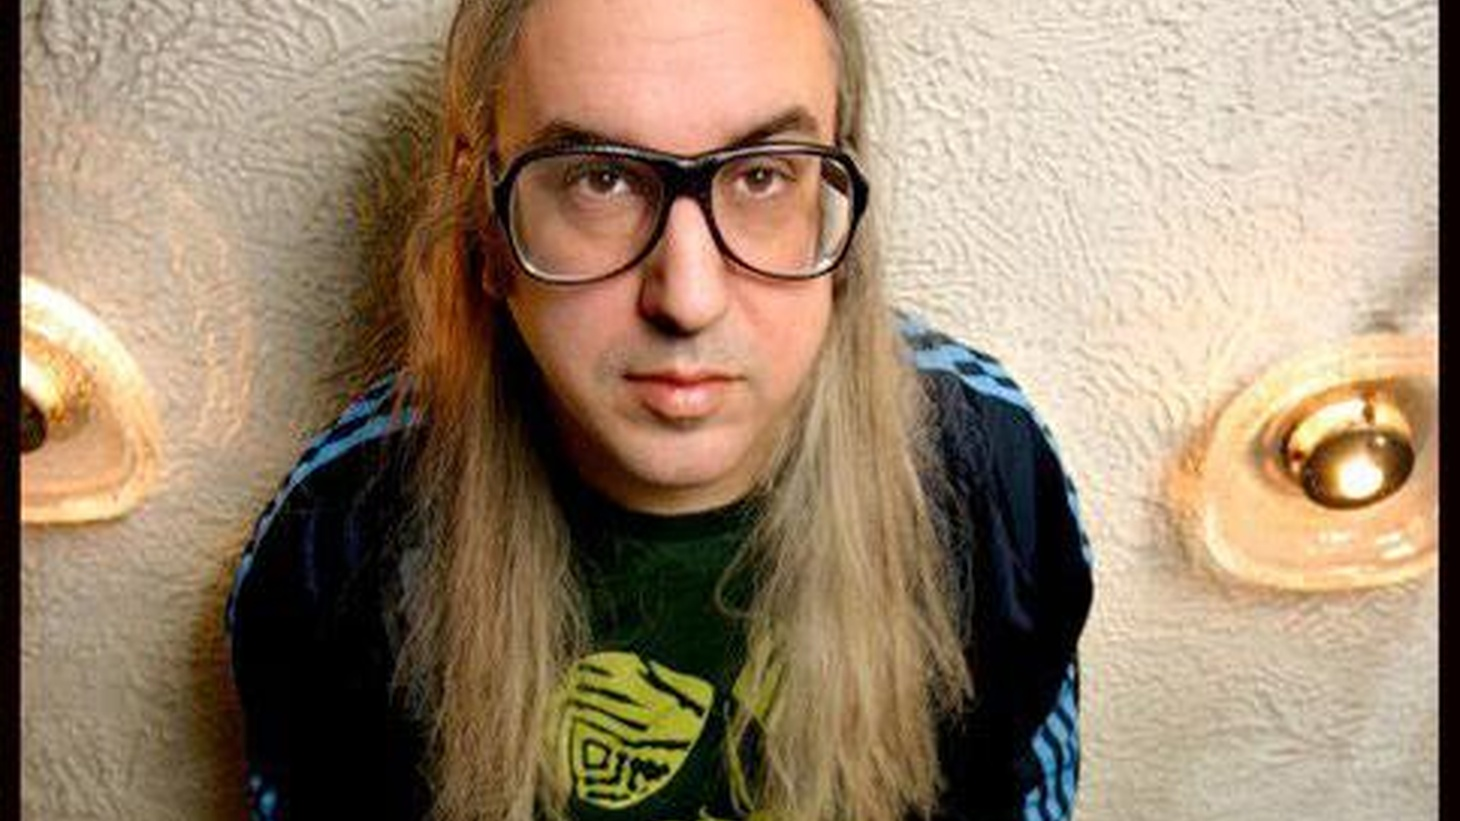 J. Mascis of Dinosaur Jr. fame has a new solo album, Several Shades of Why, coming out this month.  The acclaimed indie-rock guitarist offers a nice change of pace with an acoustic album, featuring guest spots from Kurt Vile, Kevin Drew of Broken Social Scene, and Ben Bridwell of Band of Horses.